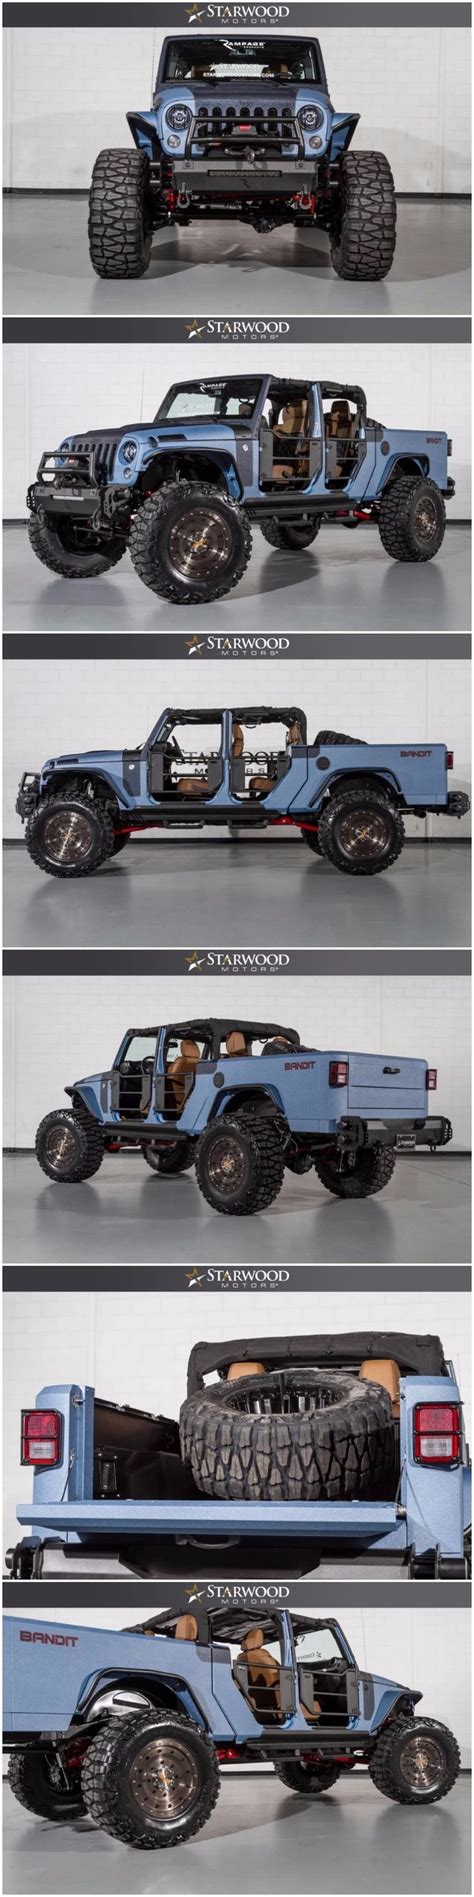 lifted jeep bandit 699 best jeeps images on pinterest